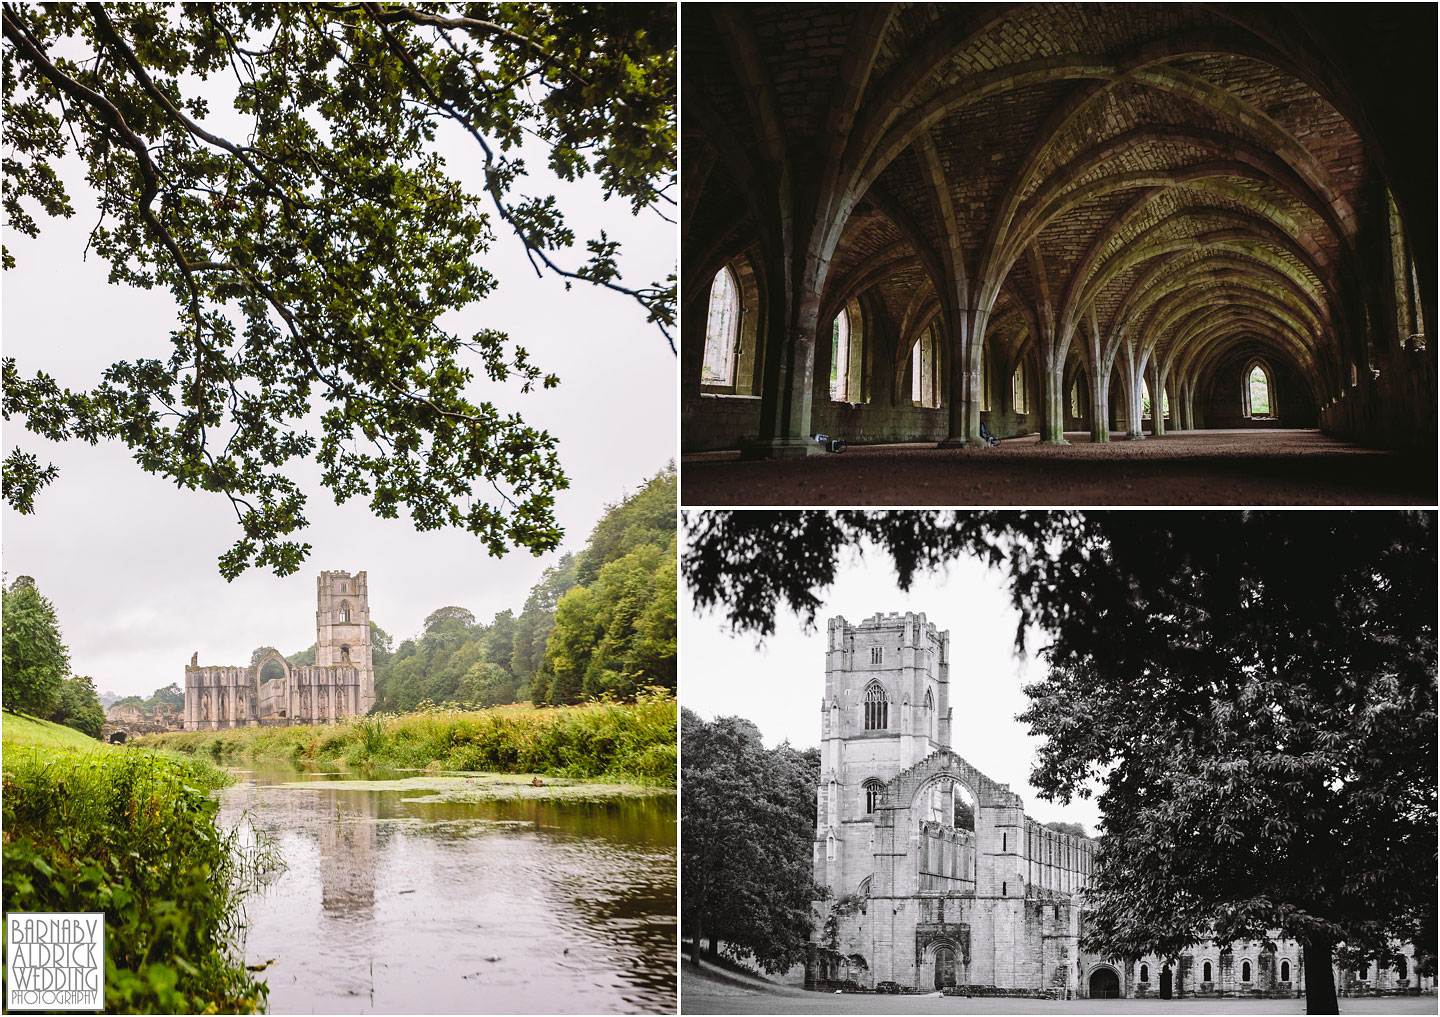 Wedding photos at Fountains Abbey showing the view from Studley Royal and the cellarium